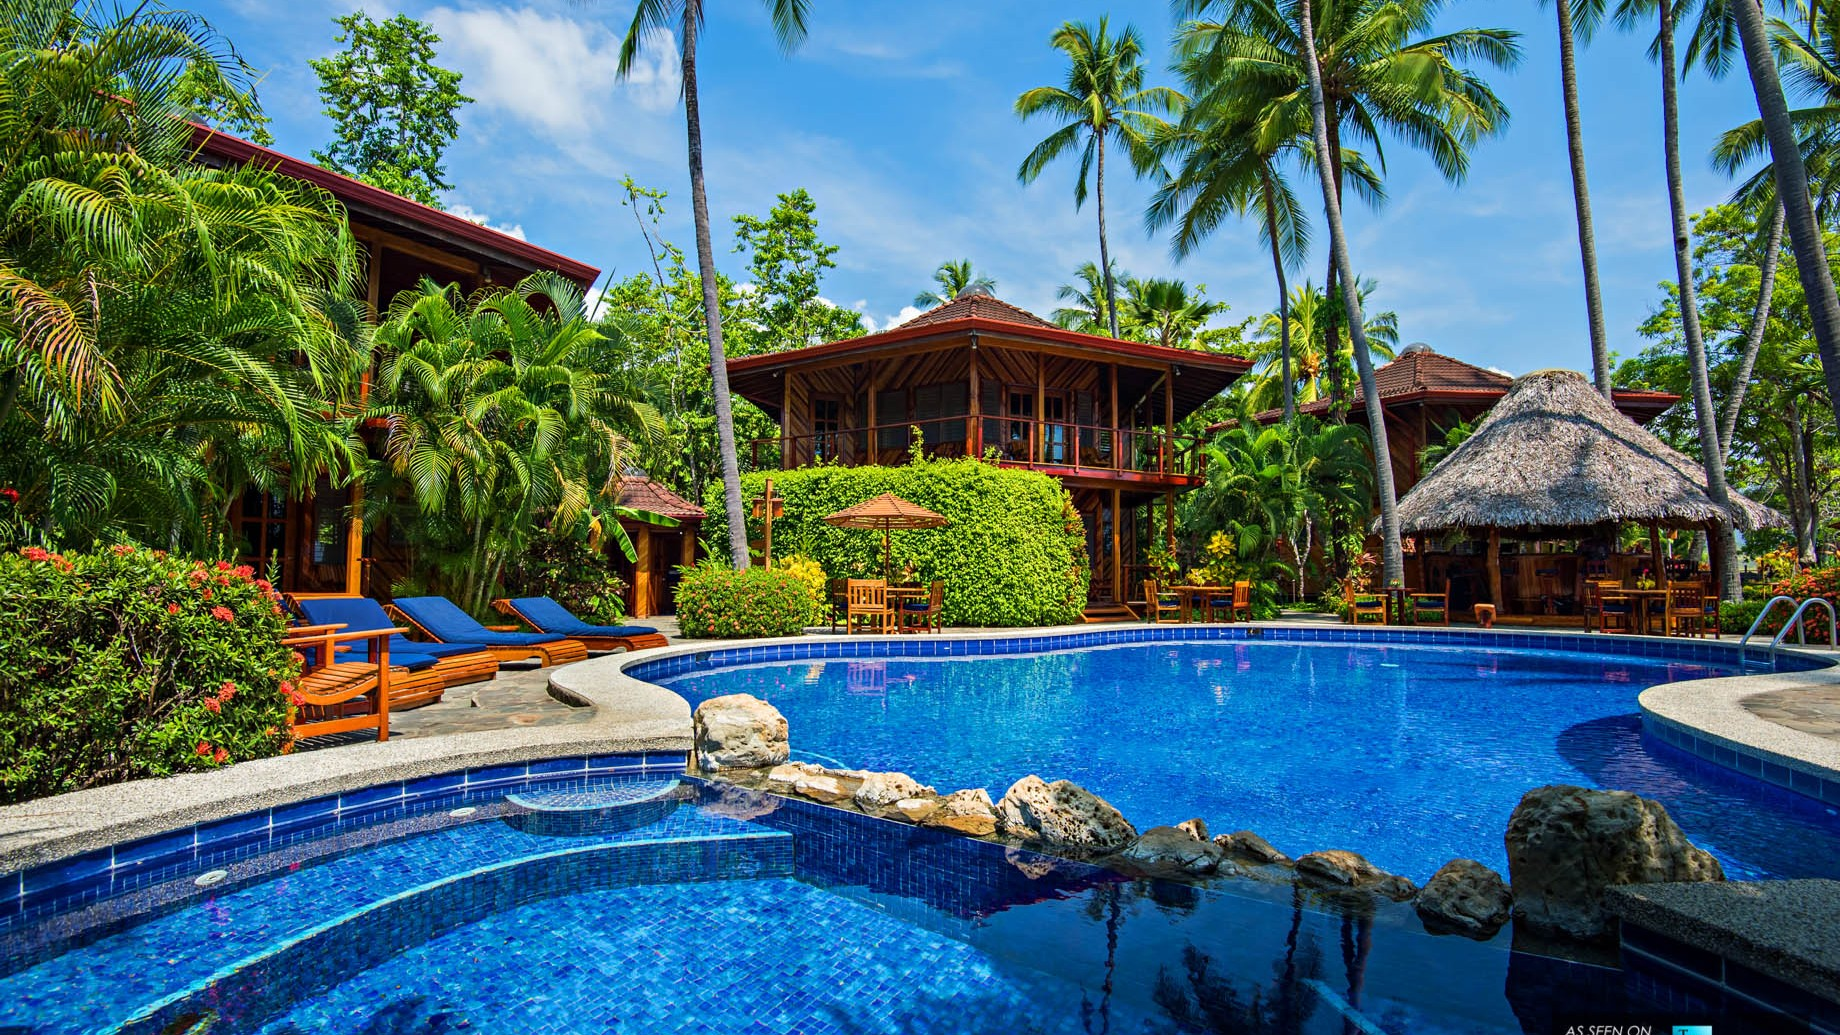 Tambor Tropical Resort Development – Tambor, Puntarenas, Costa Rica